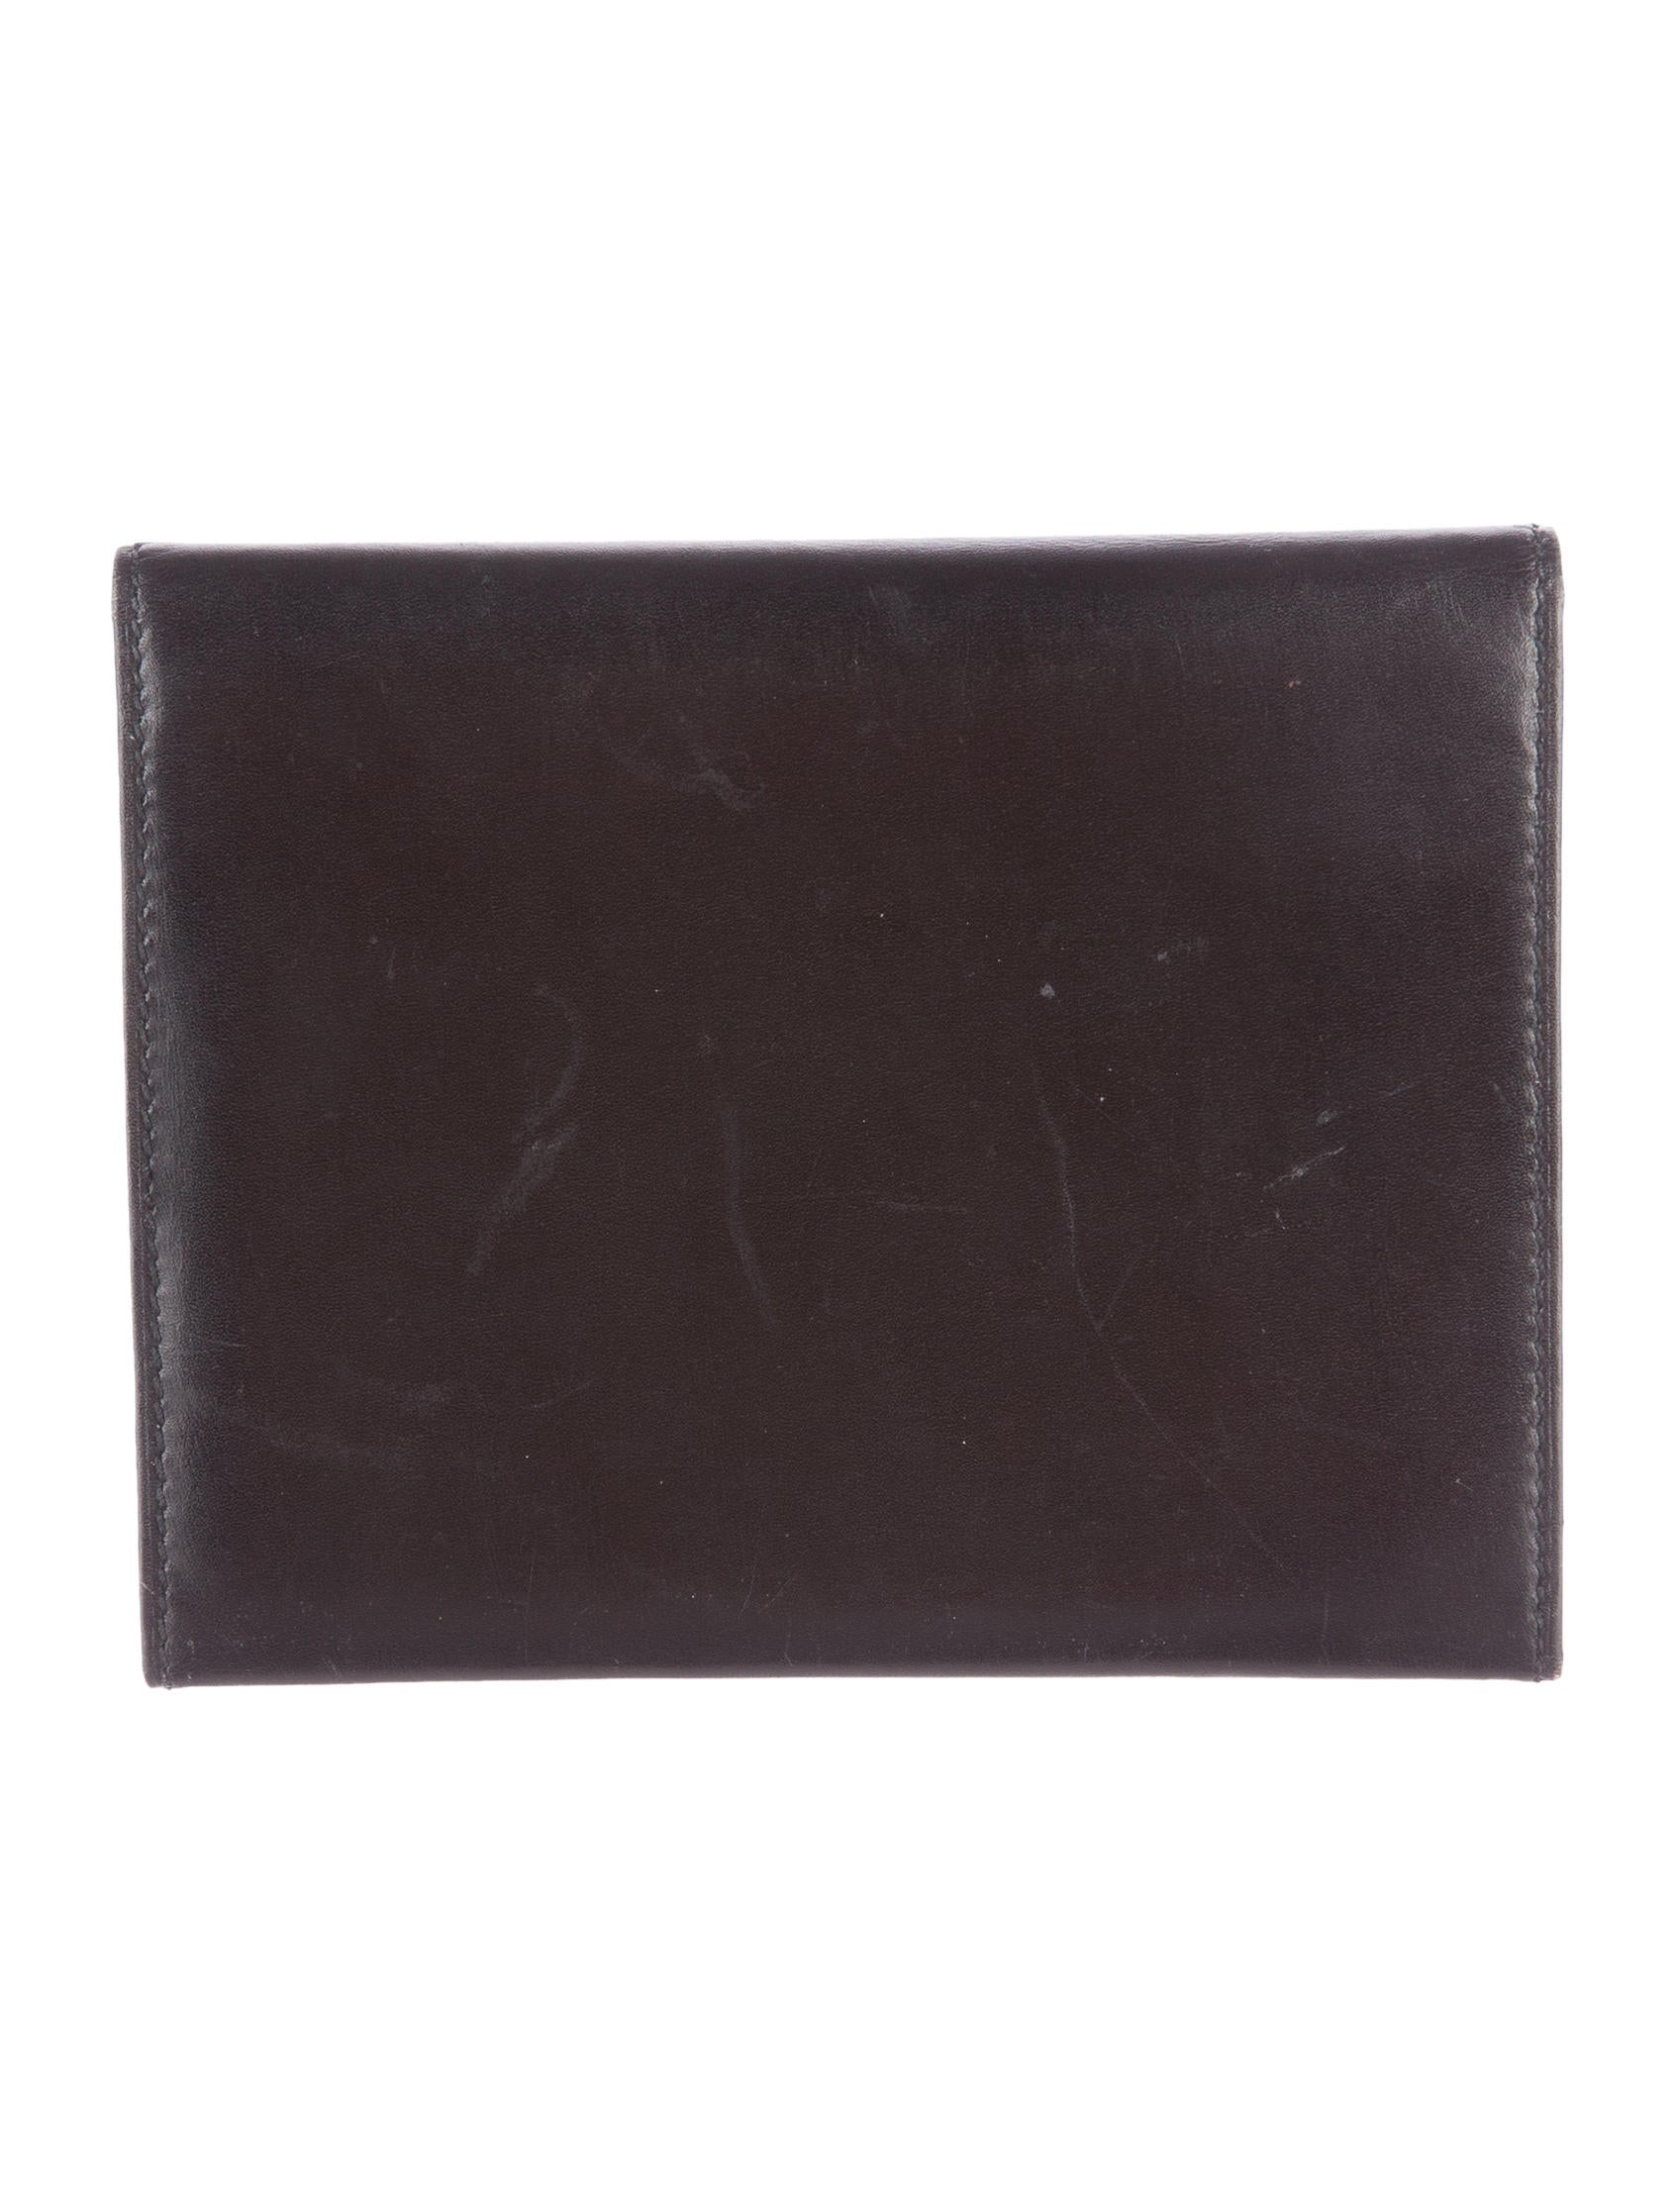 Gucci Trifold Leather Wallet Accessories Guc151915